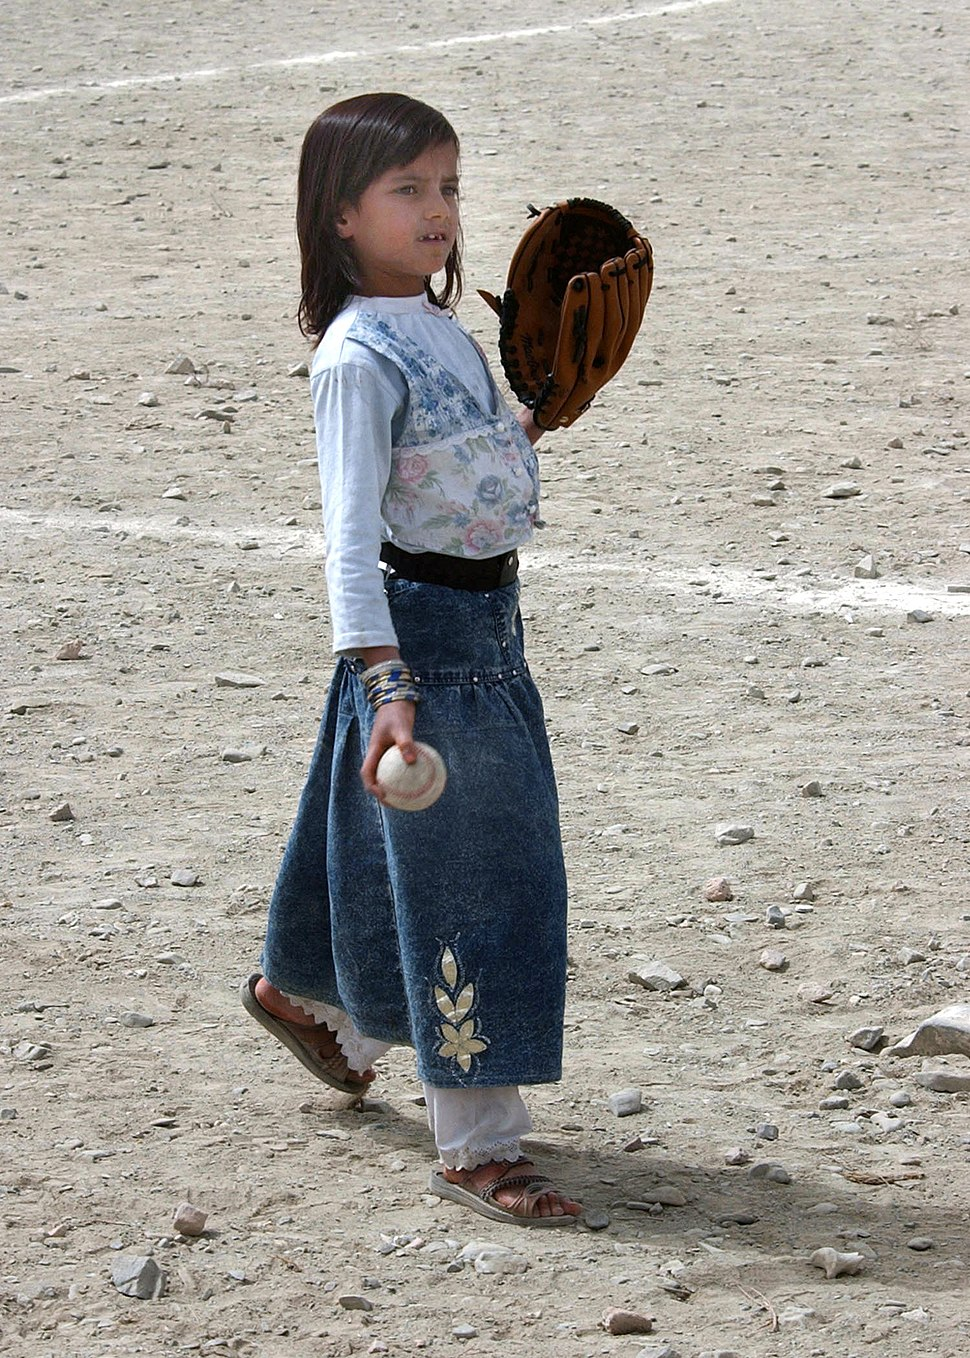 Afghan girl playing baseball in 2002